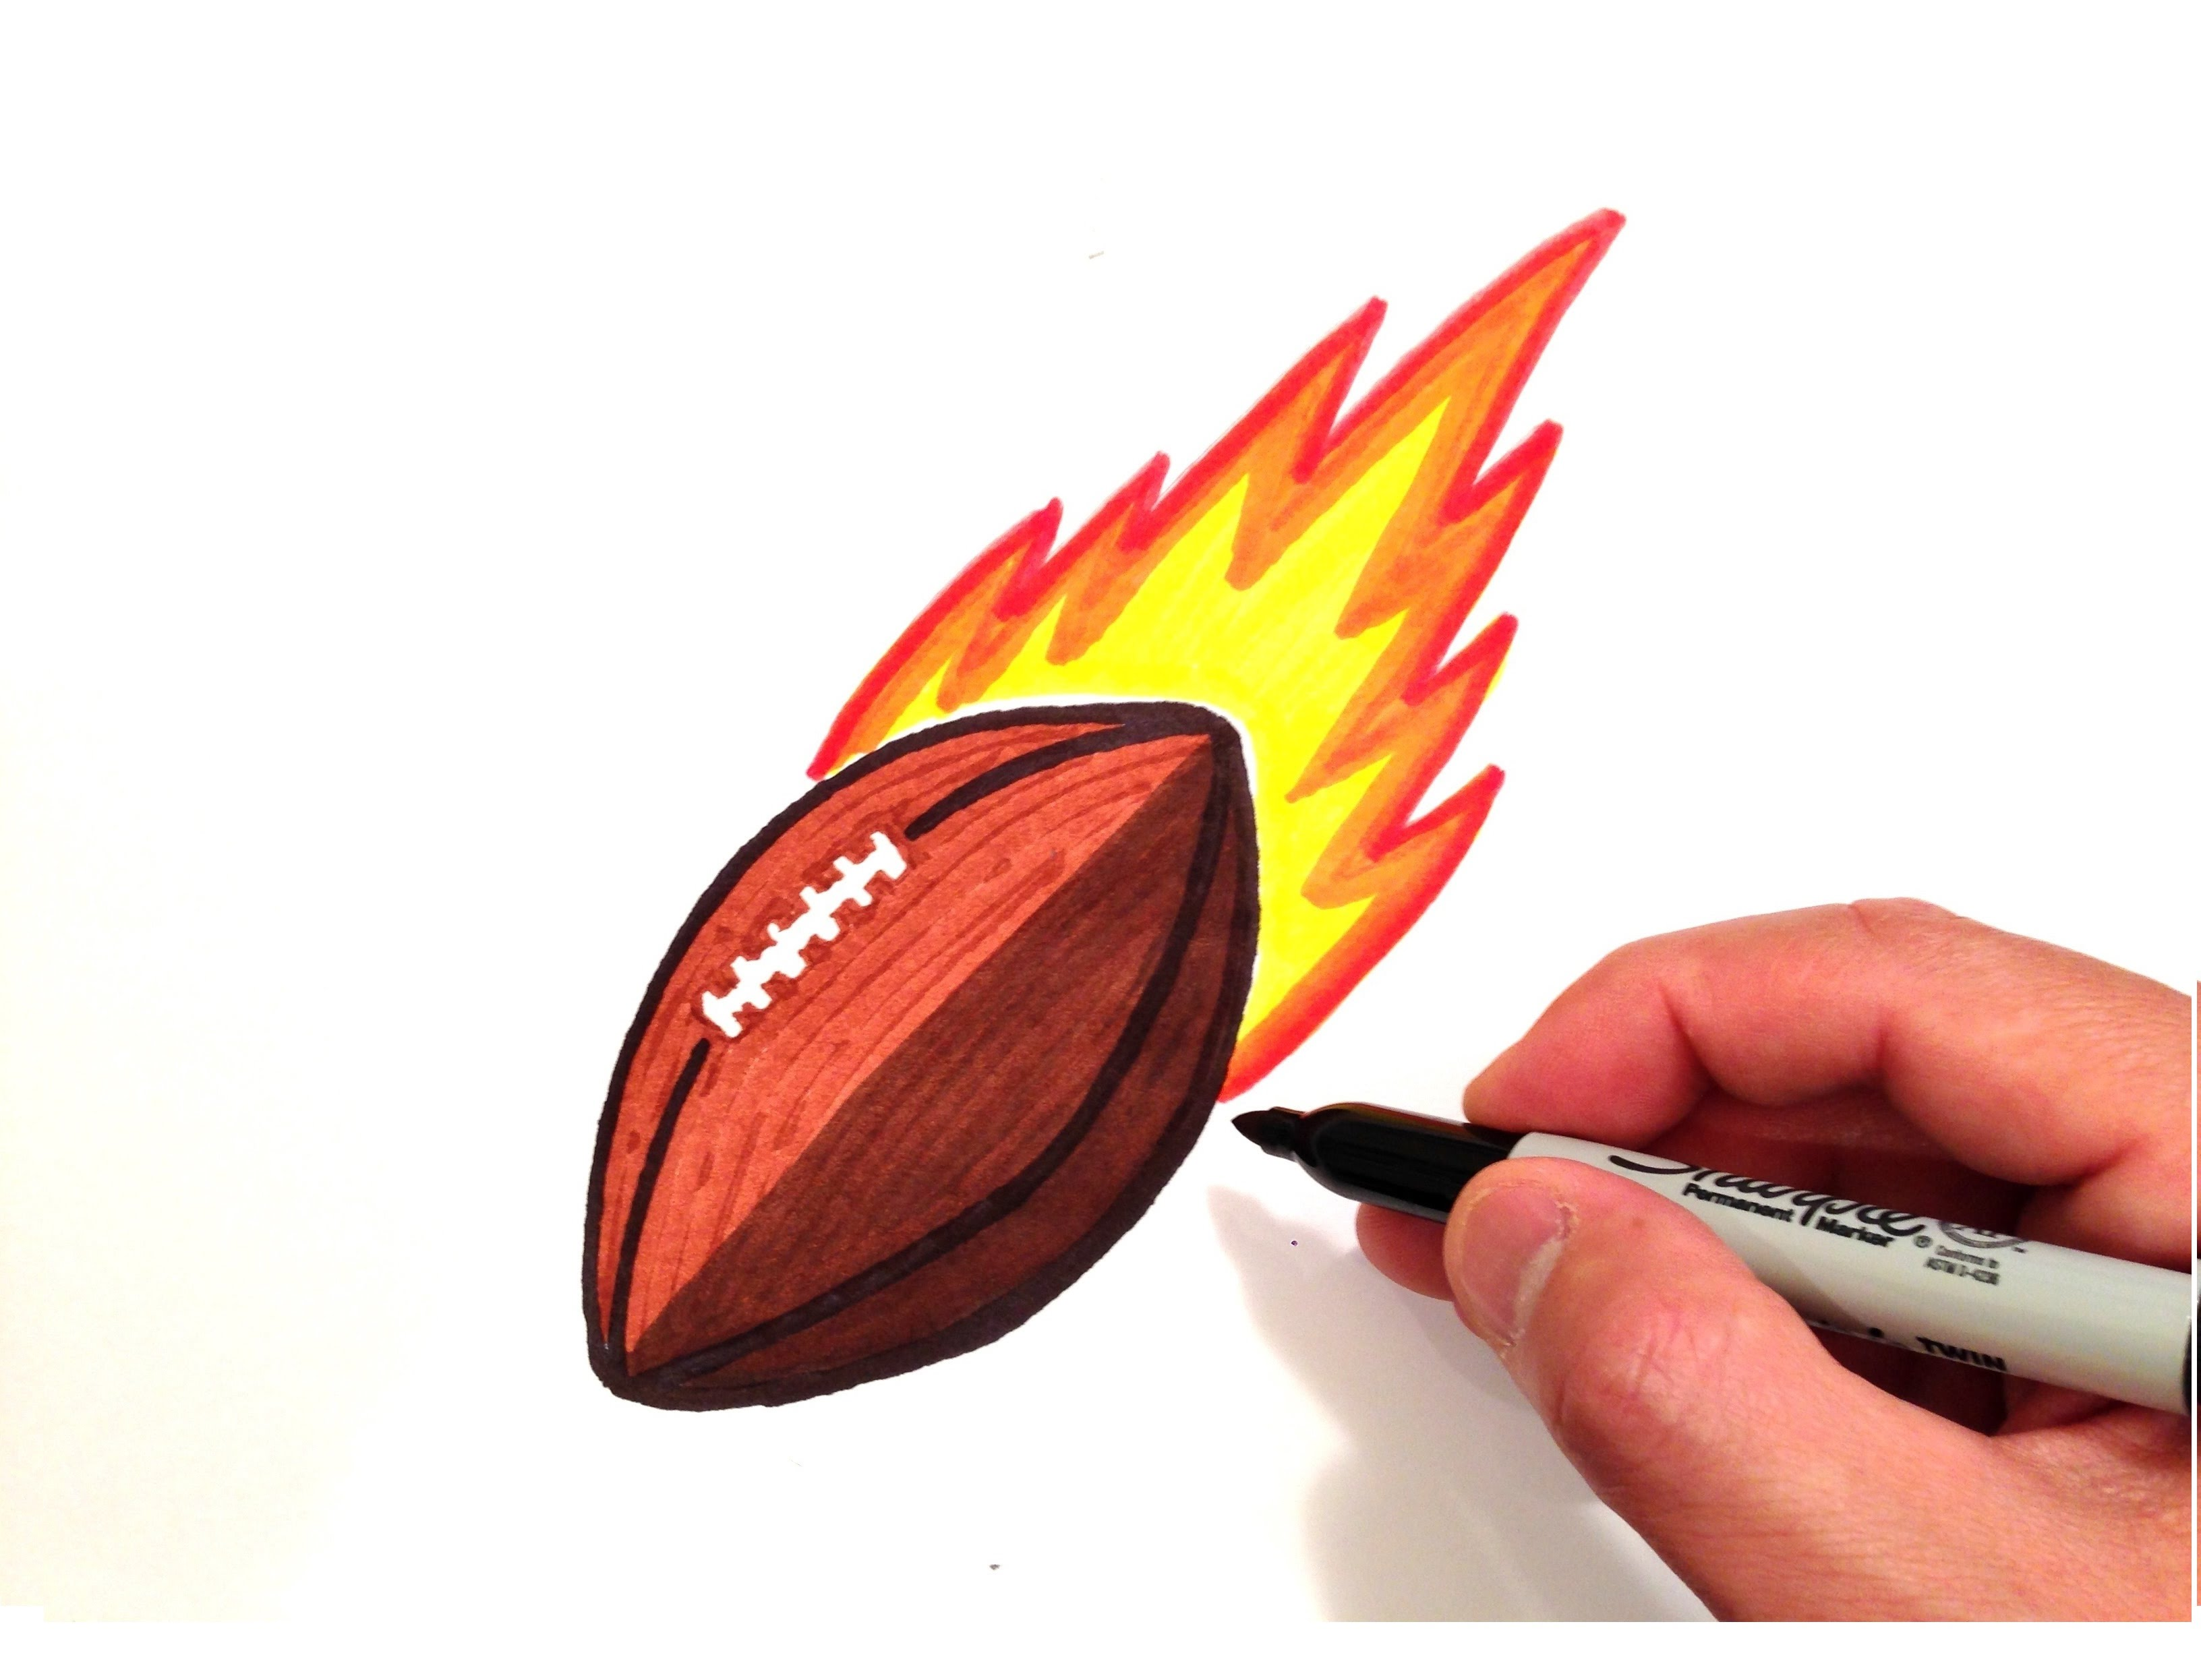 3264x2492 How To Draw A Football With Flames